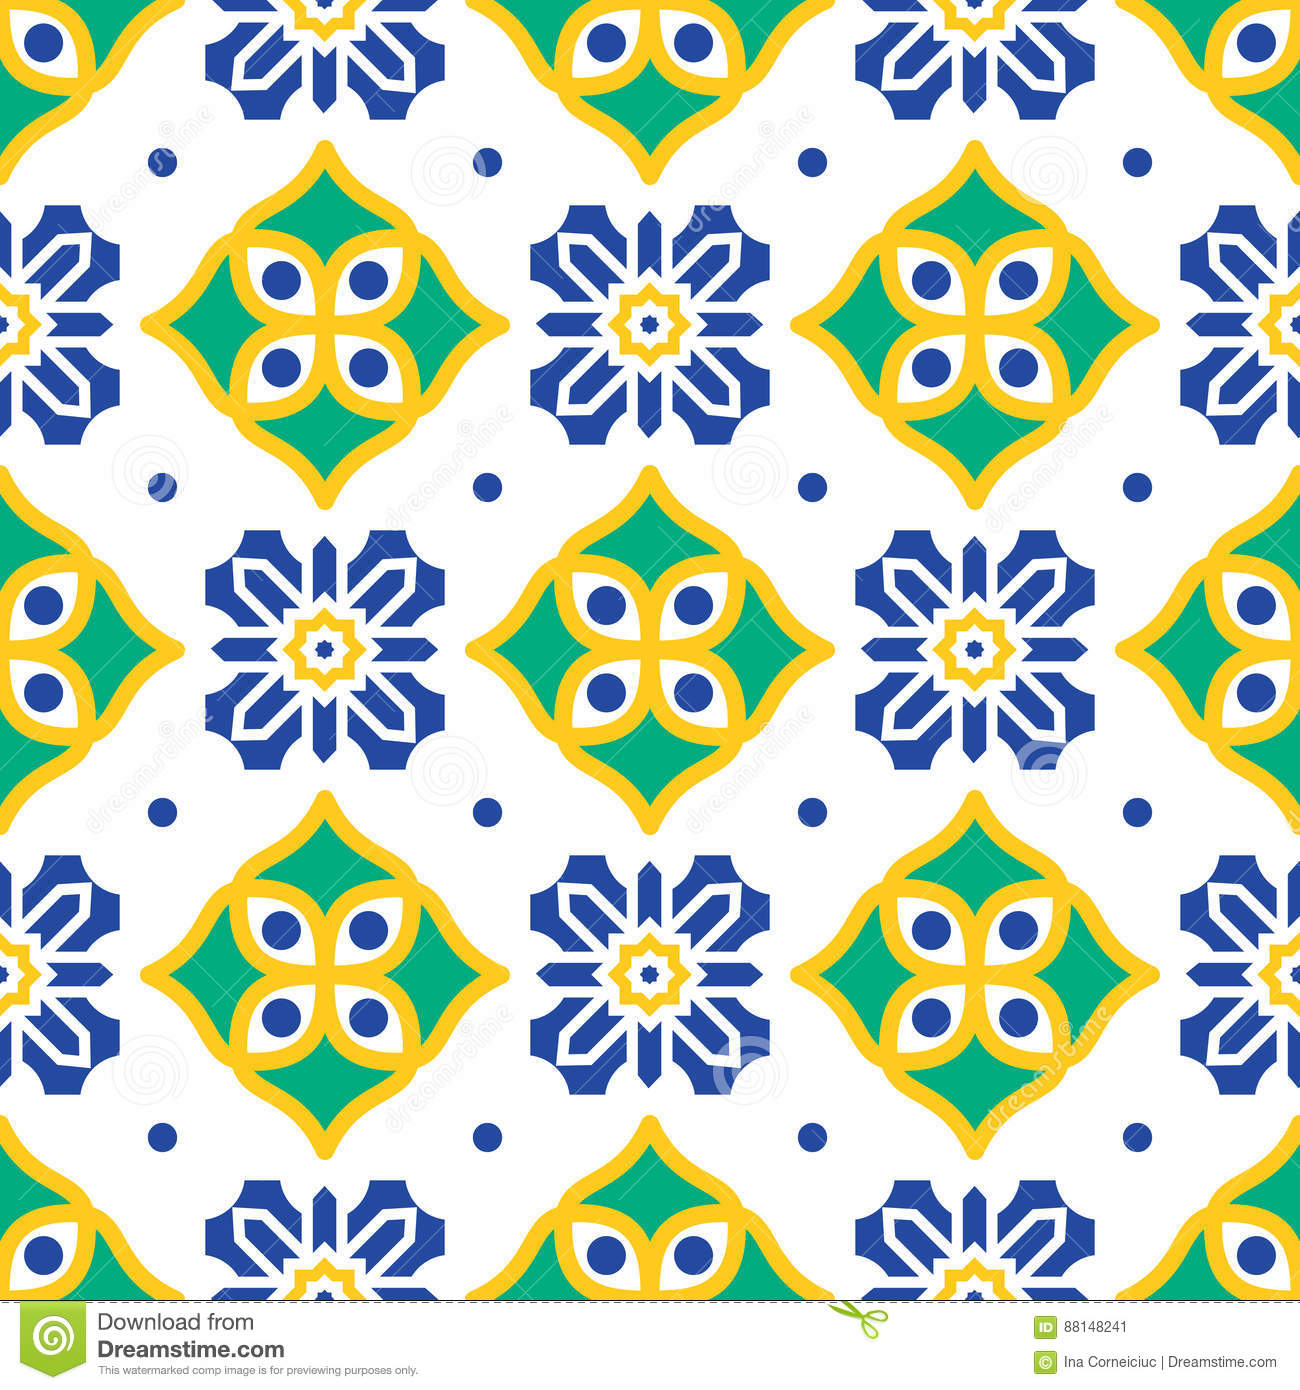 Download Blue And Green Mediterranean Seamless Tile Pattern. Stock Vector - Illustration of monochrome, blue: 88148241